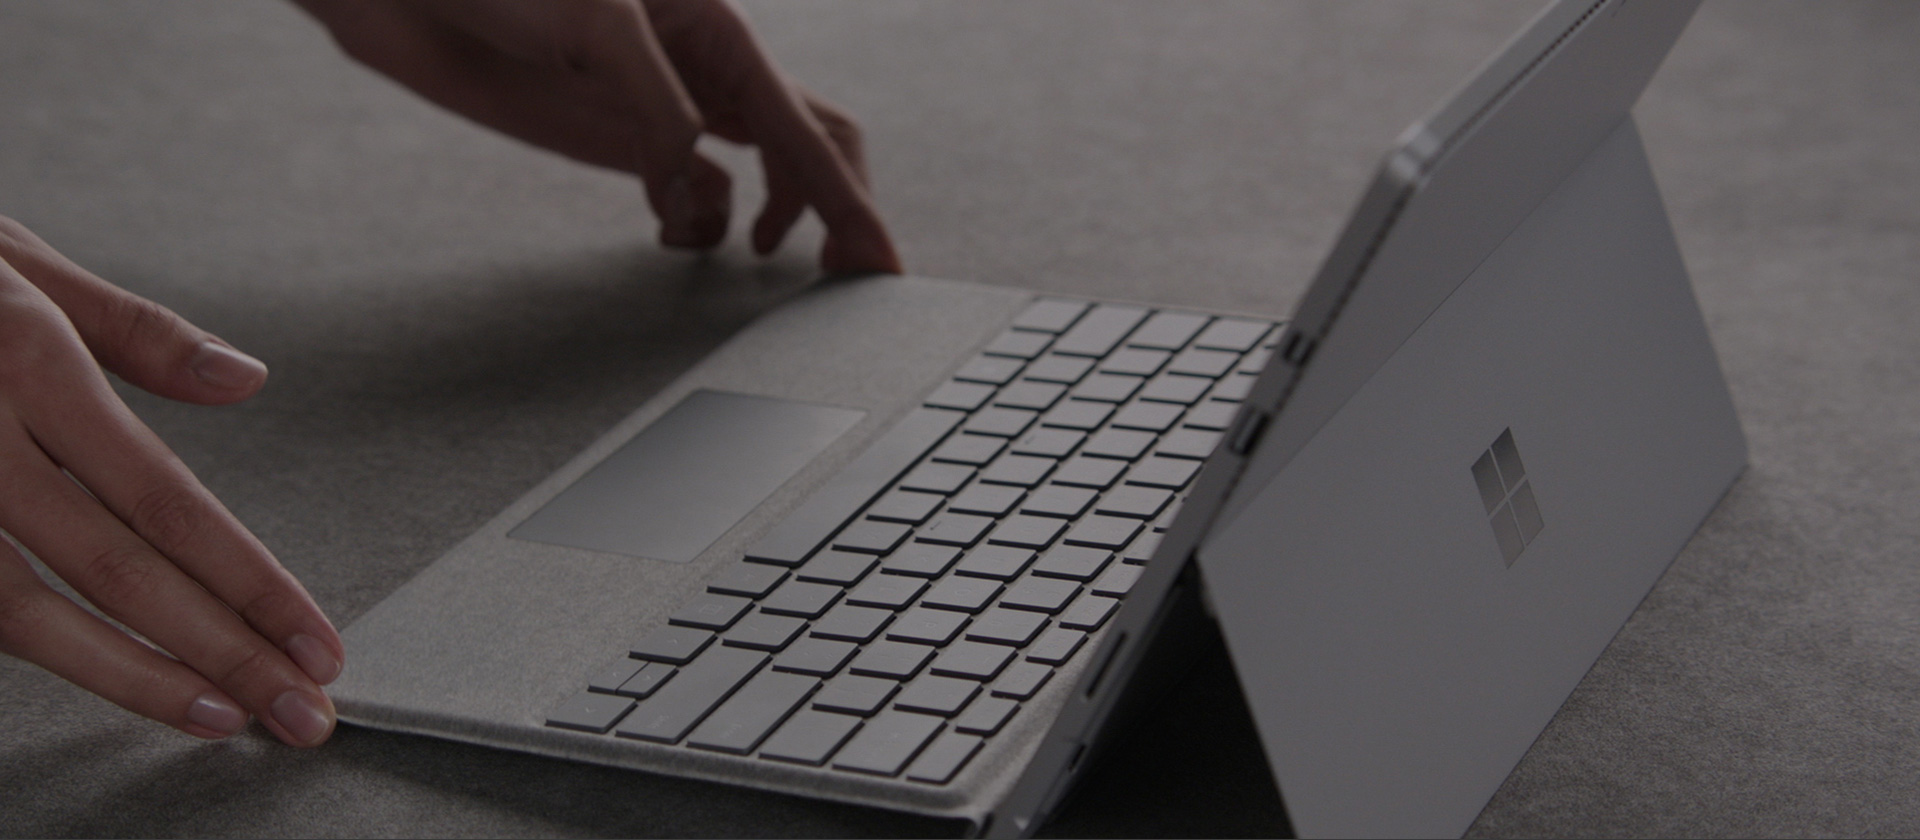 Microsoft Surface Signature Type Cover Technical Specs, Beauty & innovation in every detail.